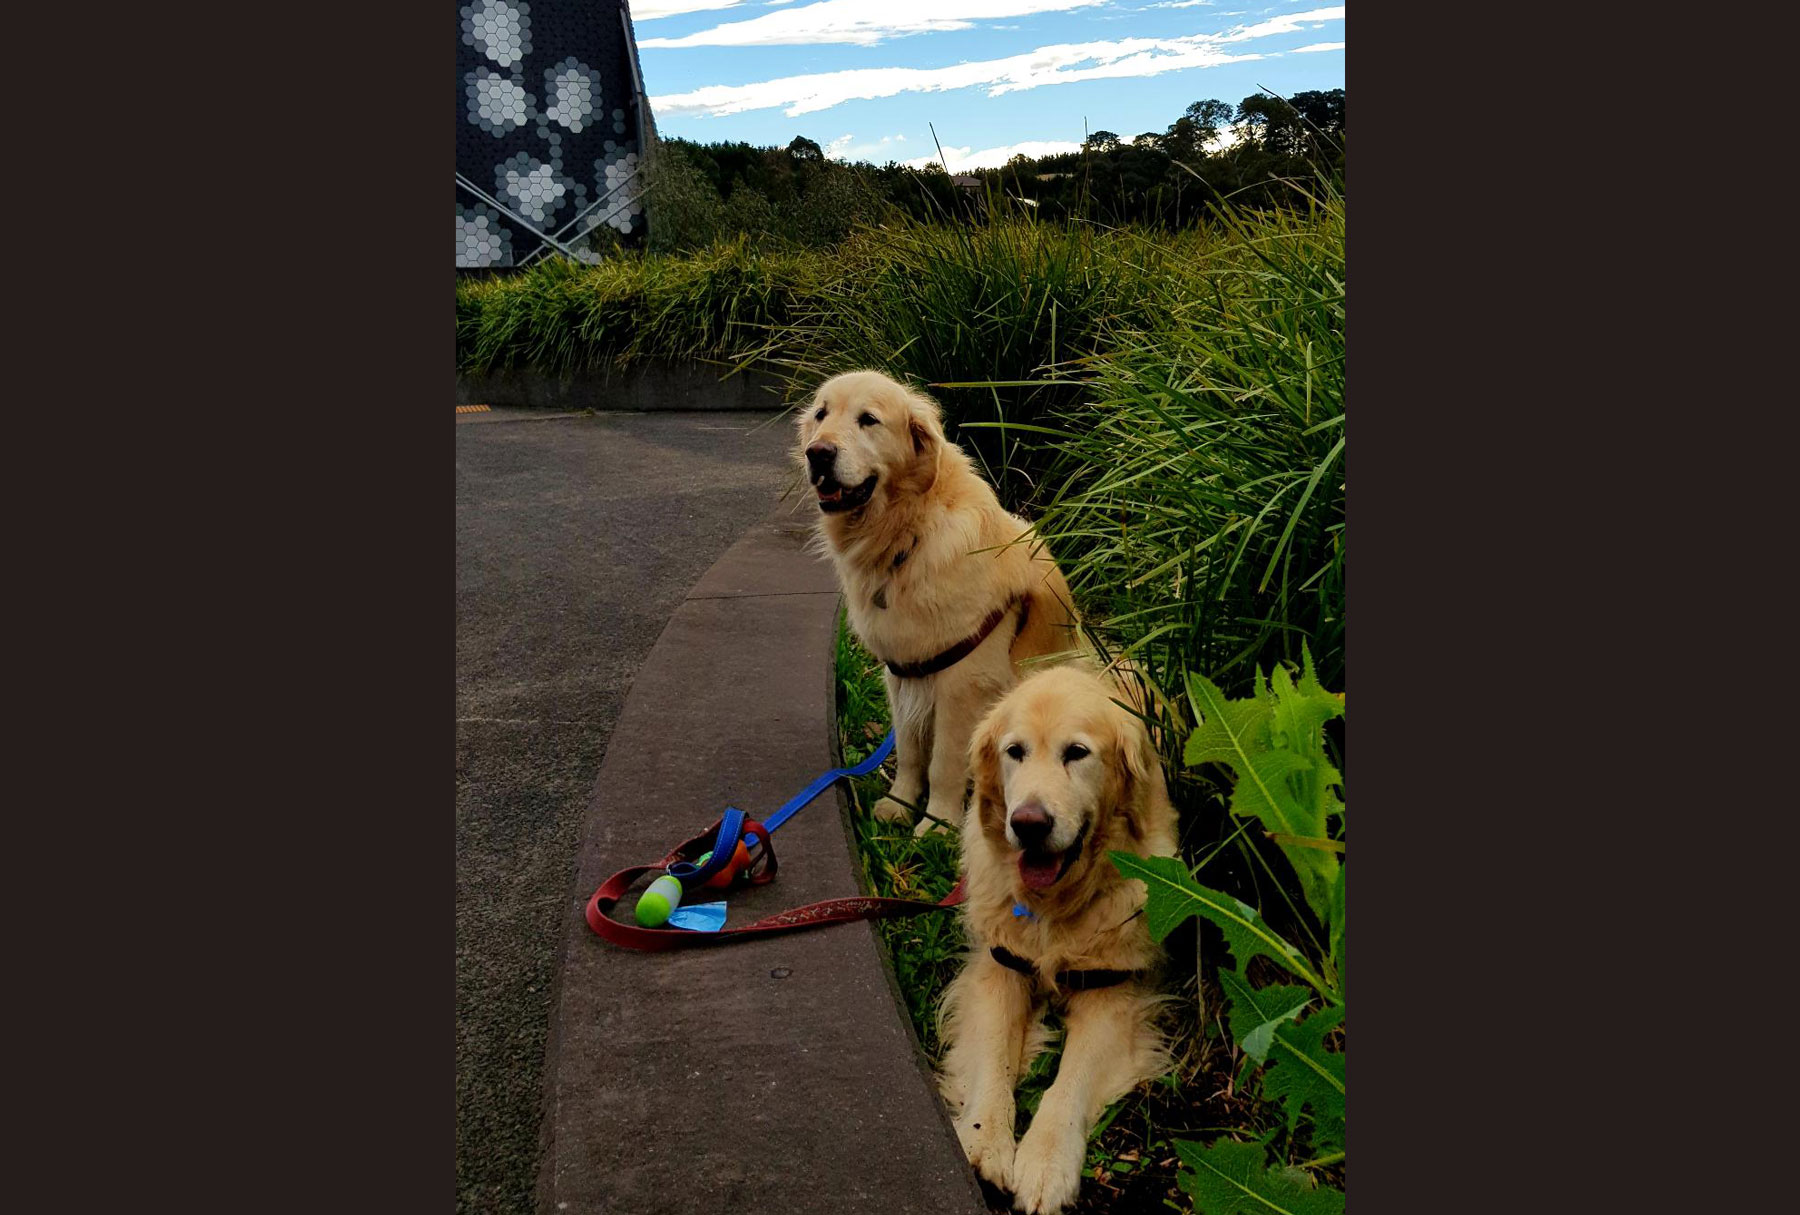 Goldens can have osteoarthritis